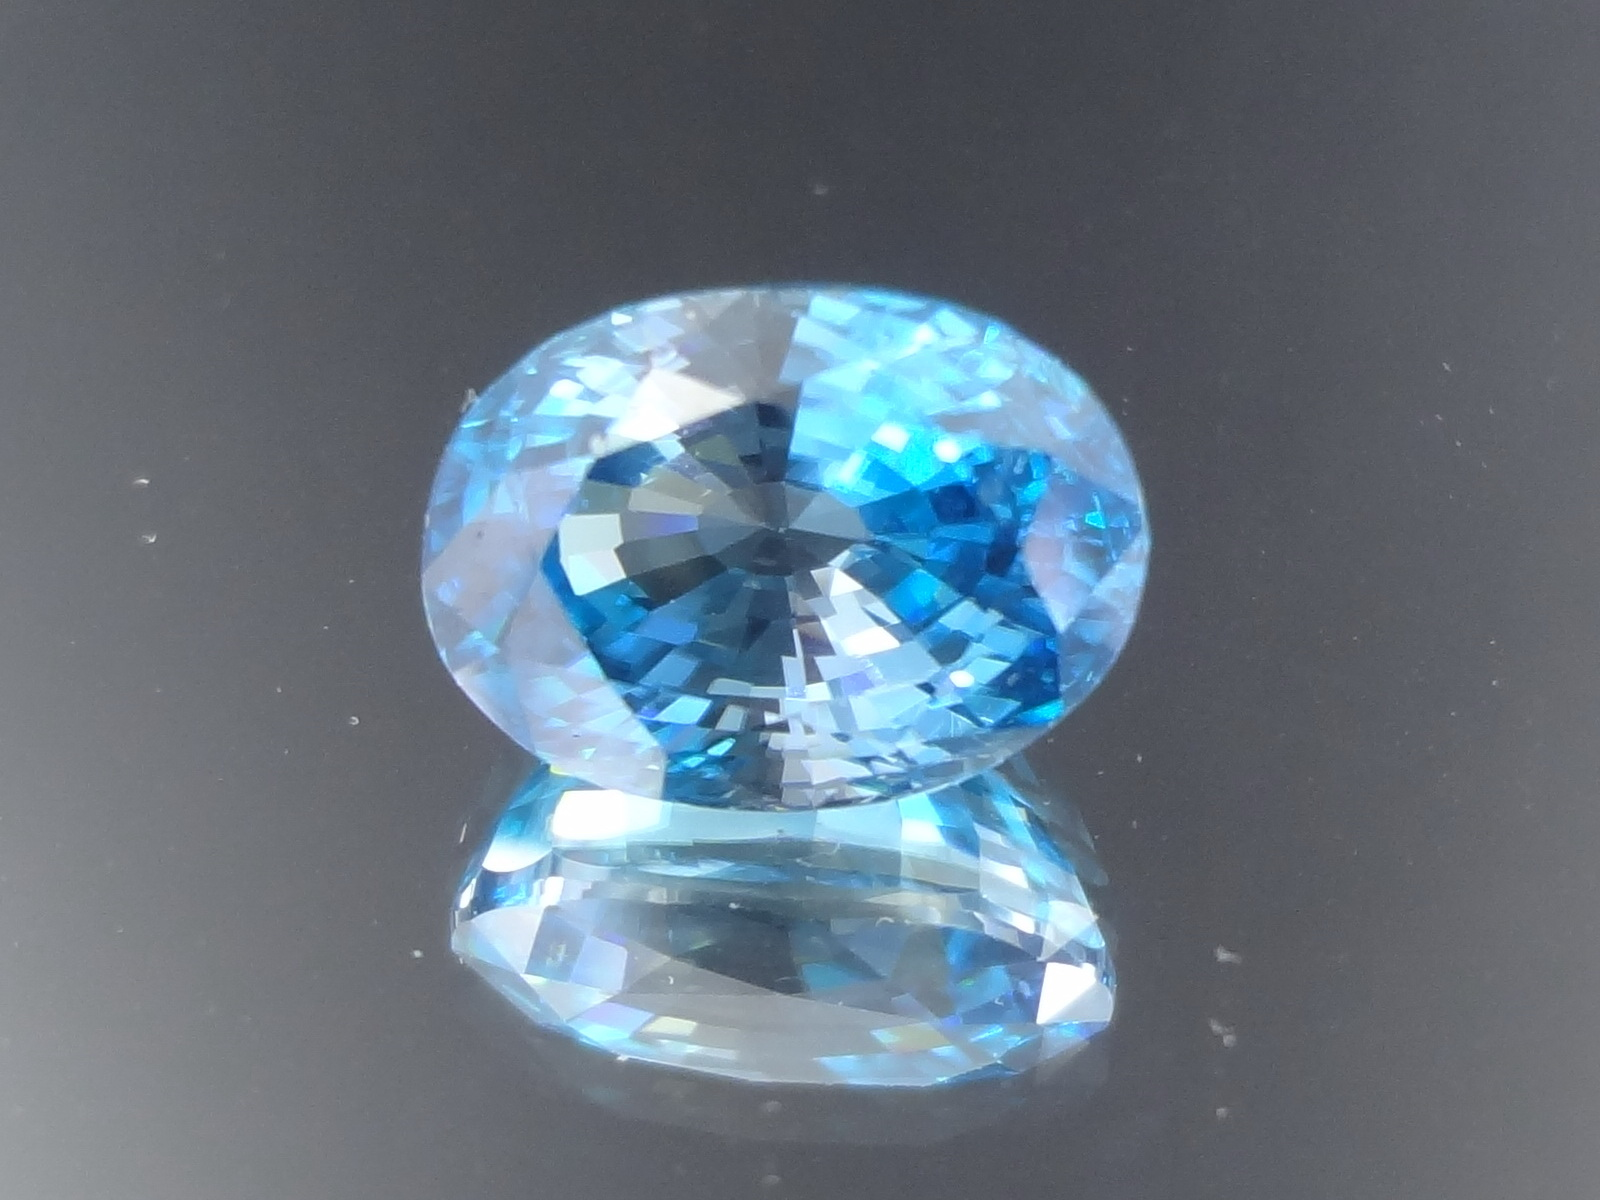 Large Flawless and Shiny Oval Blue Zircon from Cambodia, 8.9 carats